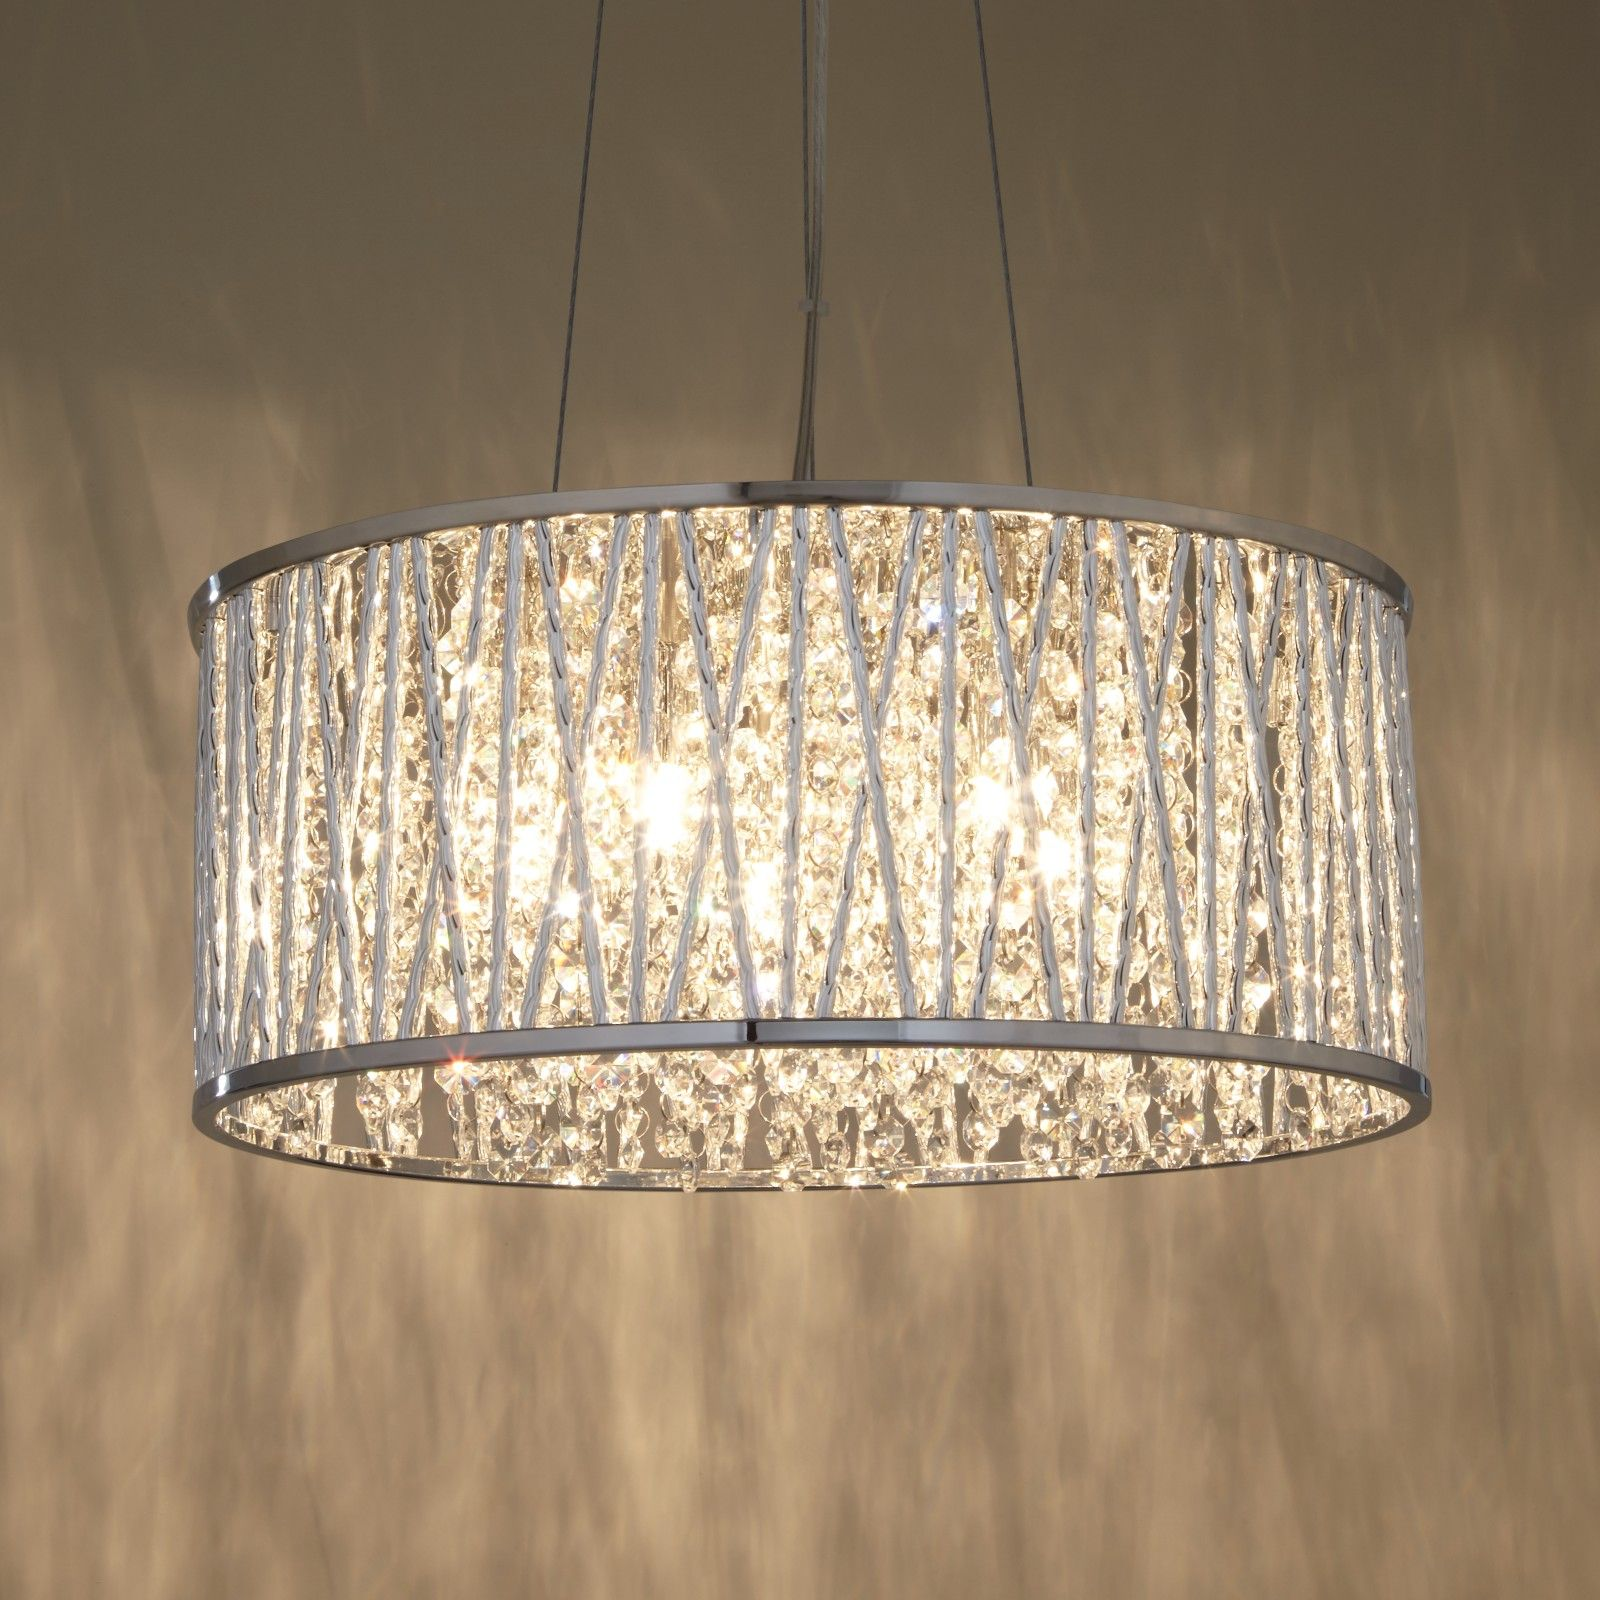 Bedroom Ceiling Lights John Lewis : Emilia drum crystal pendant light